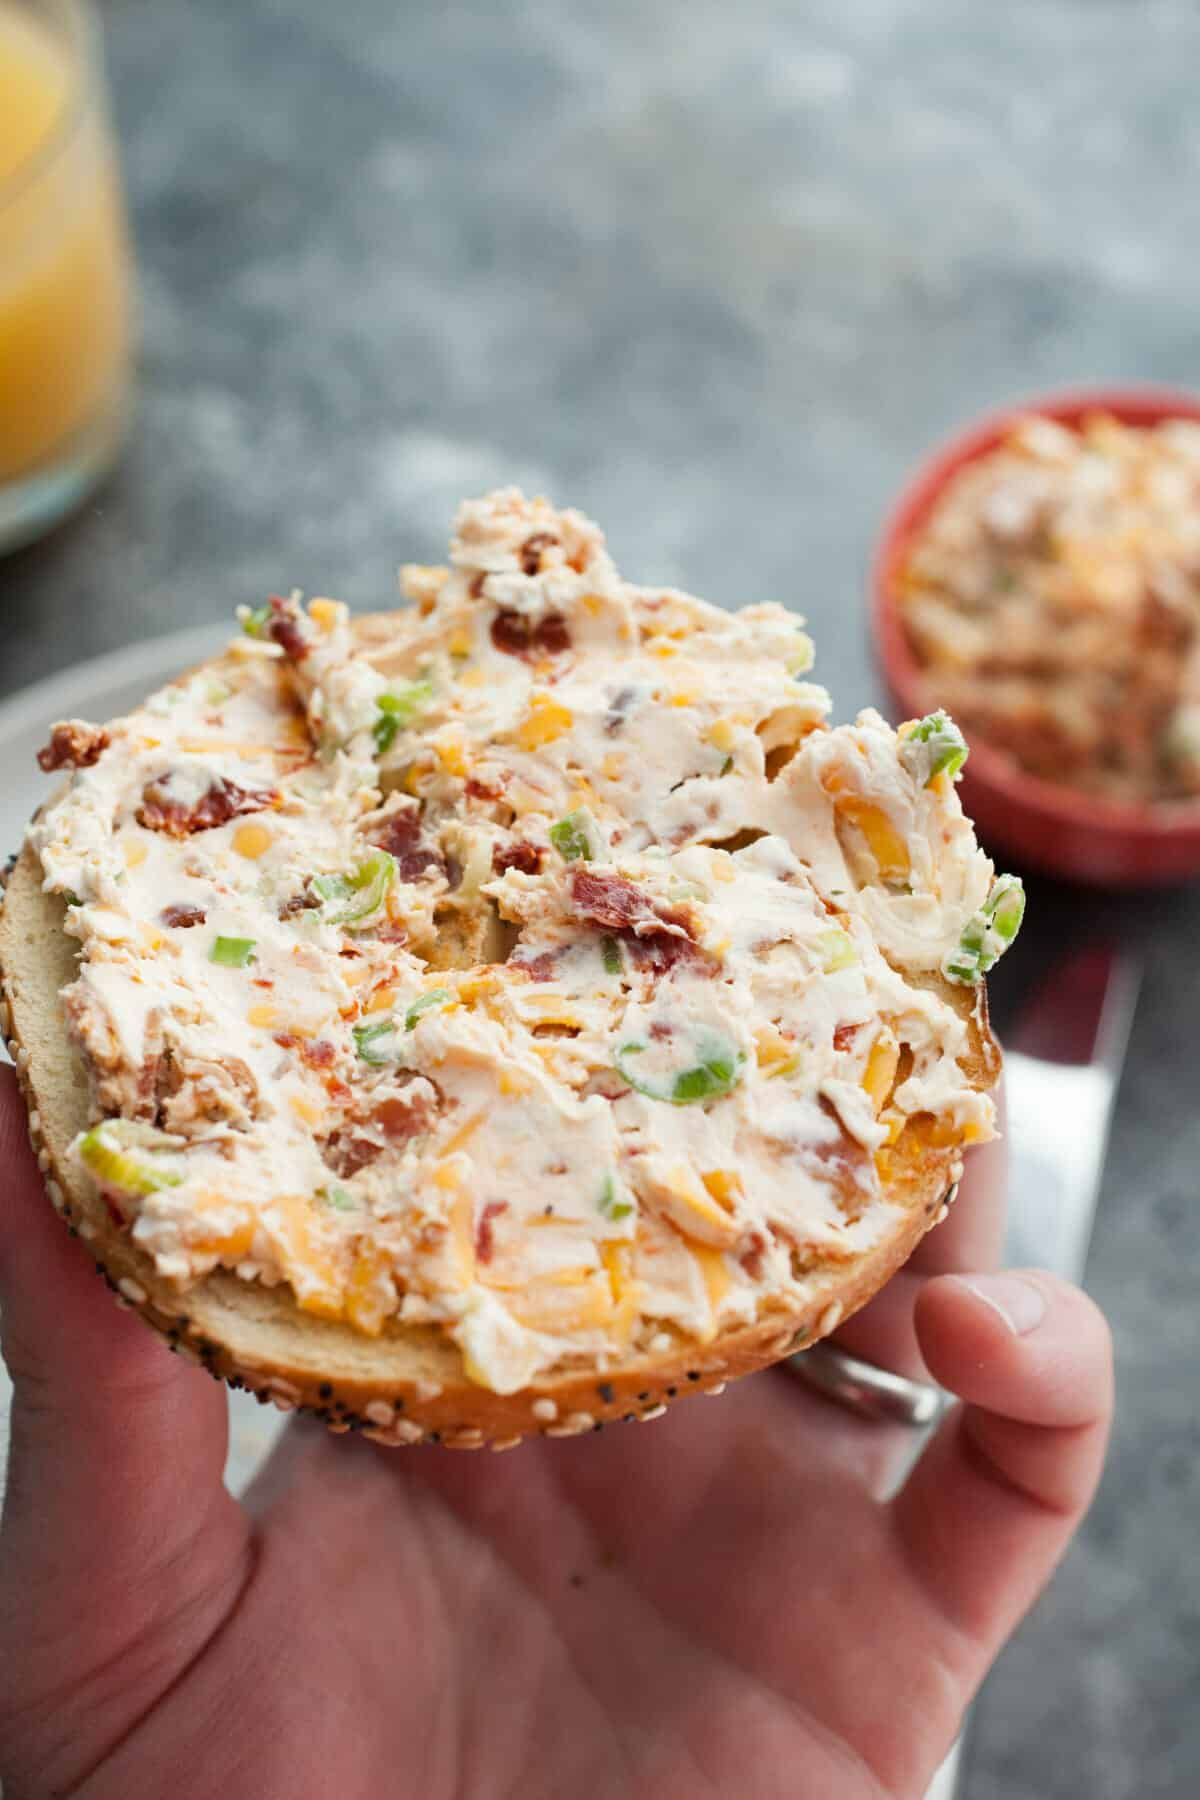 A delicious bacon cream cheese spread that you can't find in stores. Loaded with all the favorites like cheddar, bacon, scallion, and sun-dried tomato. Make your next bagel even better!   macheesmo.com #breakfast #bagel #creamcheese #bacon #cheddar